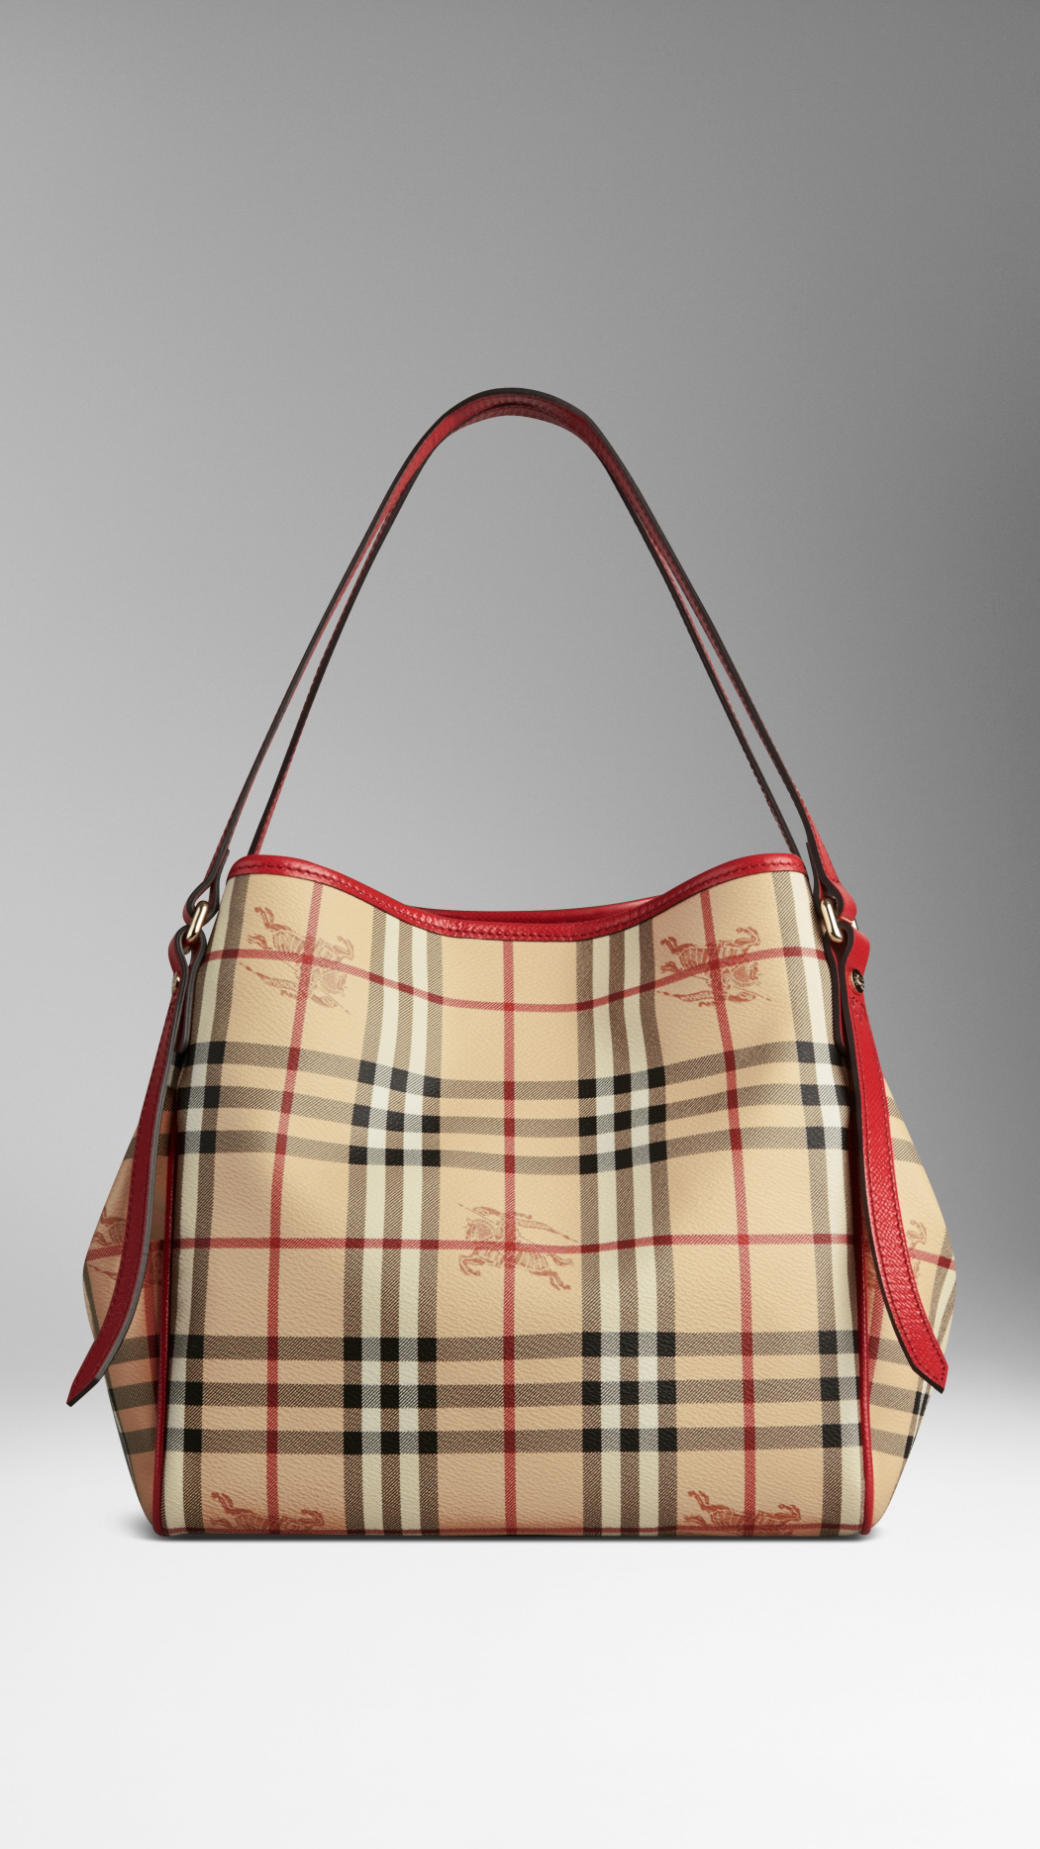 088cff8c6e88 Lyst - Burberry Small Haymarket Check Patent Trim Tote Bag in Red